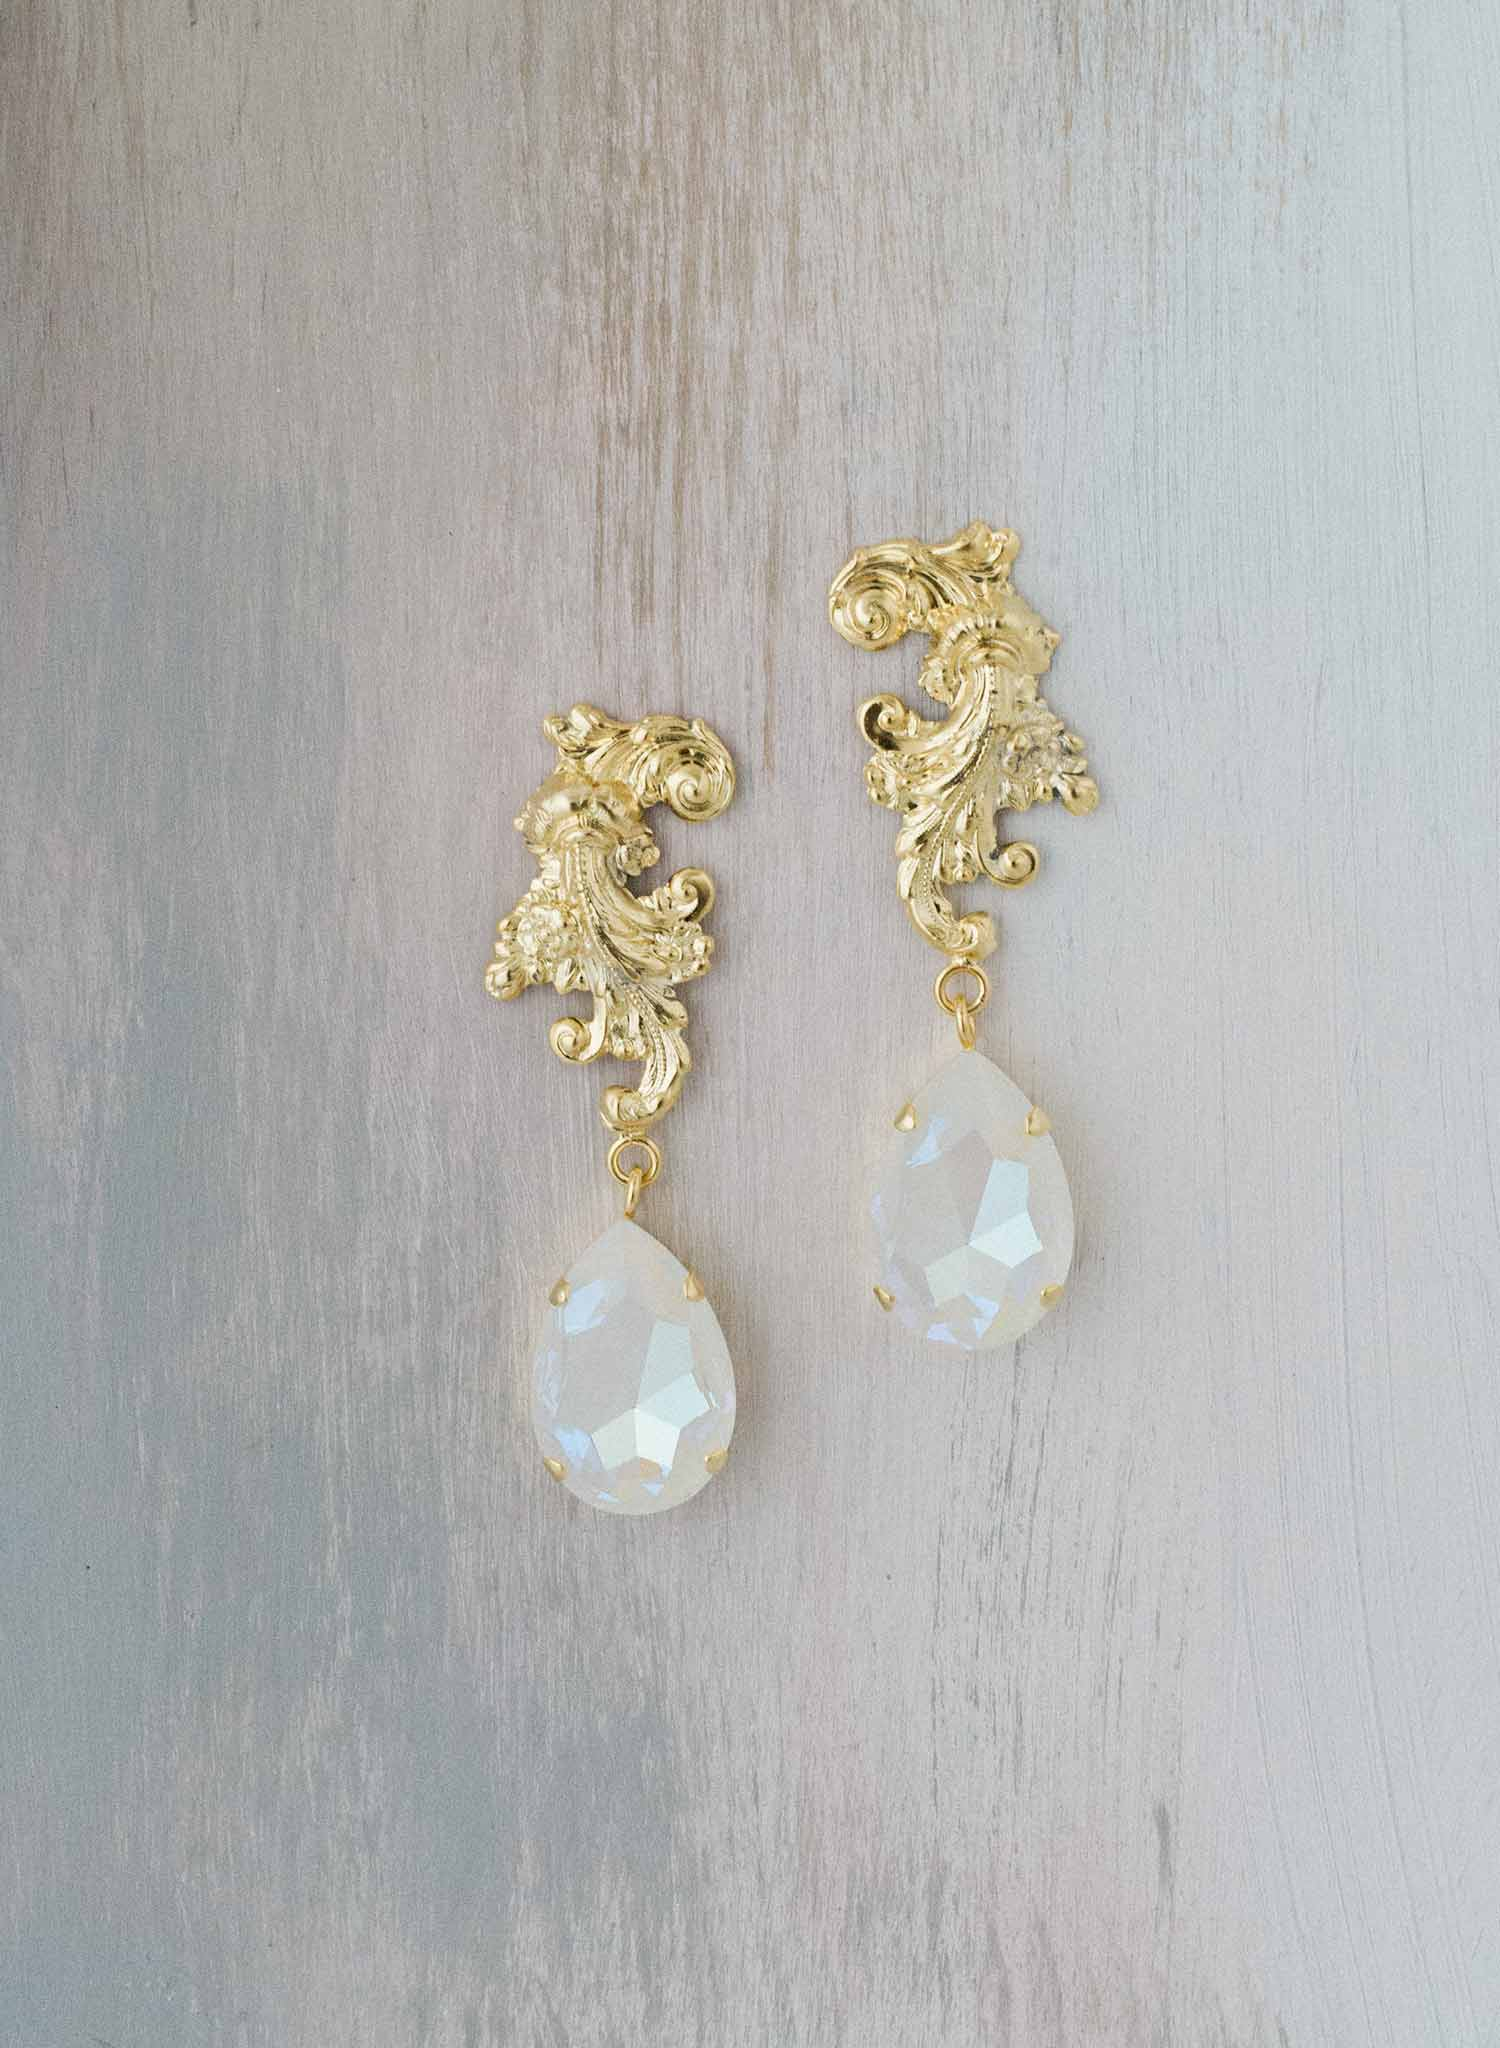 Flourish crystal drop earrings - Style #9031